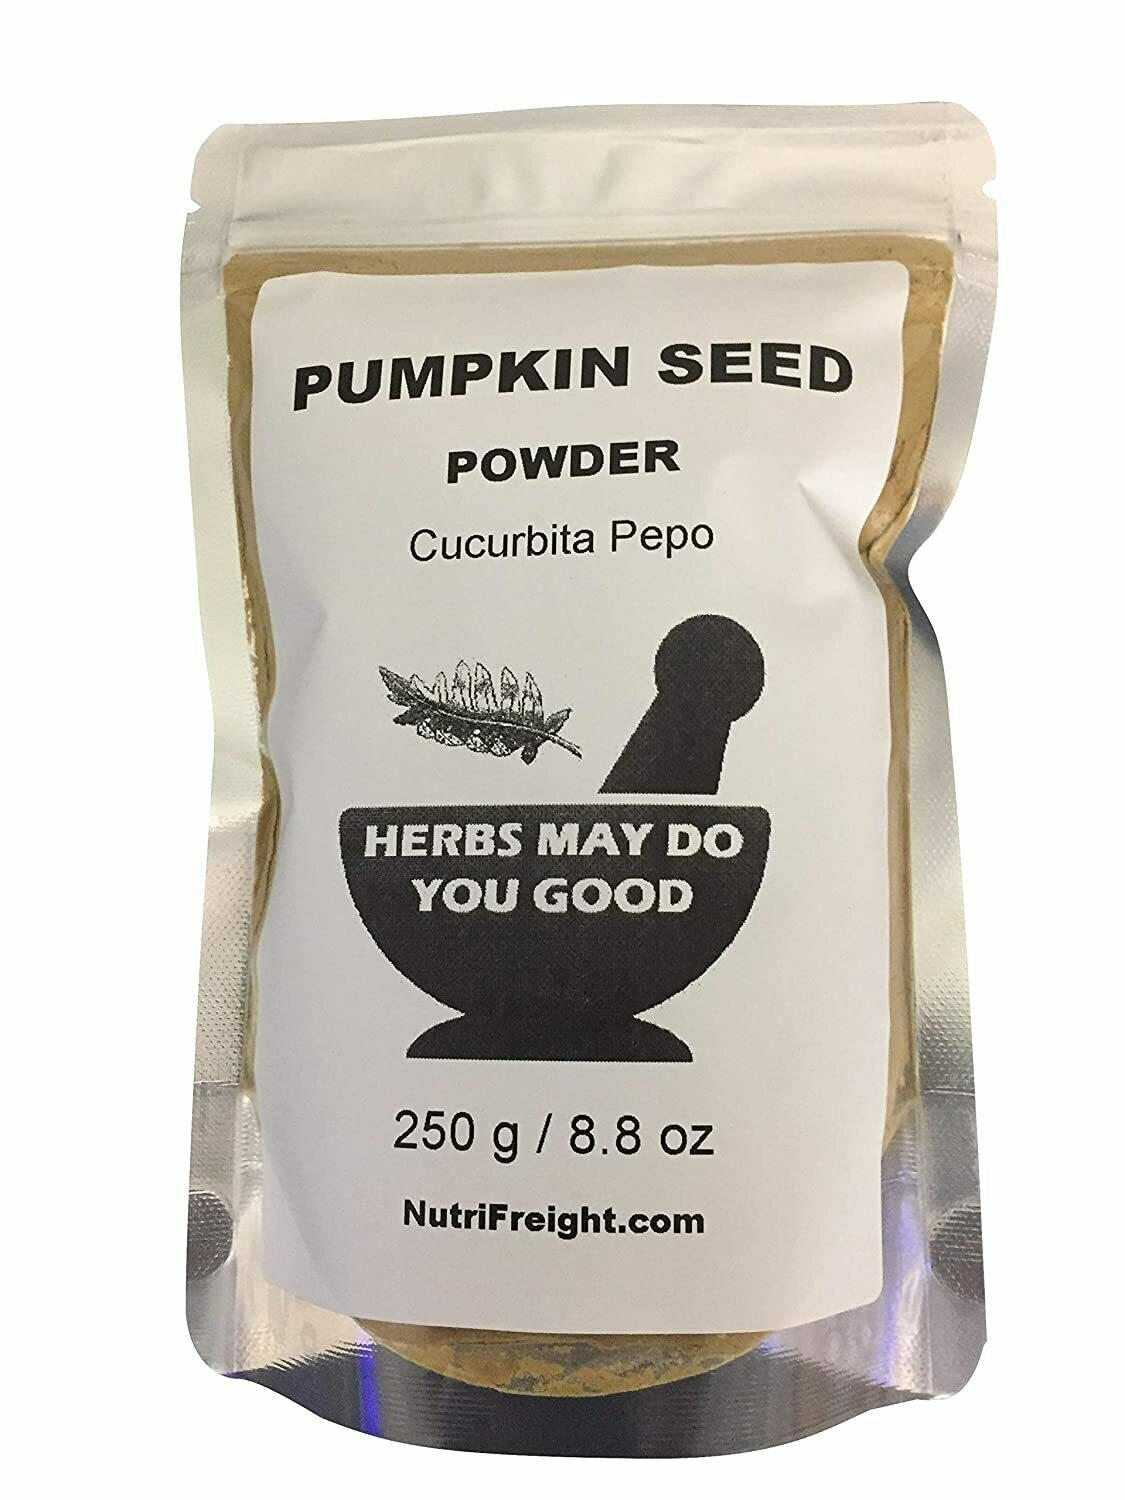 Pumpkin Seed Powder Herbs May Do You Good Trusted Brand 250 g / 8.8 oz